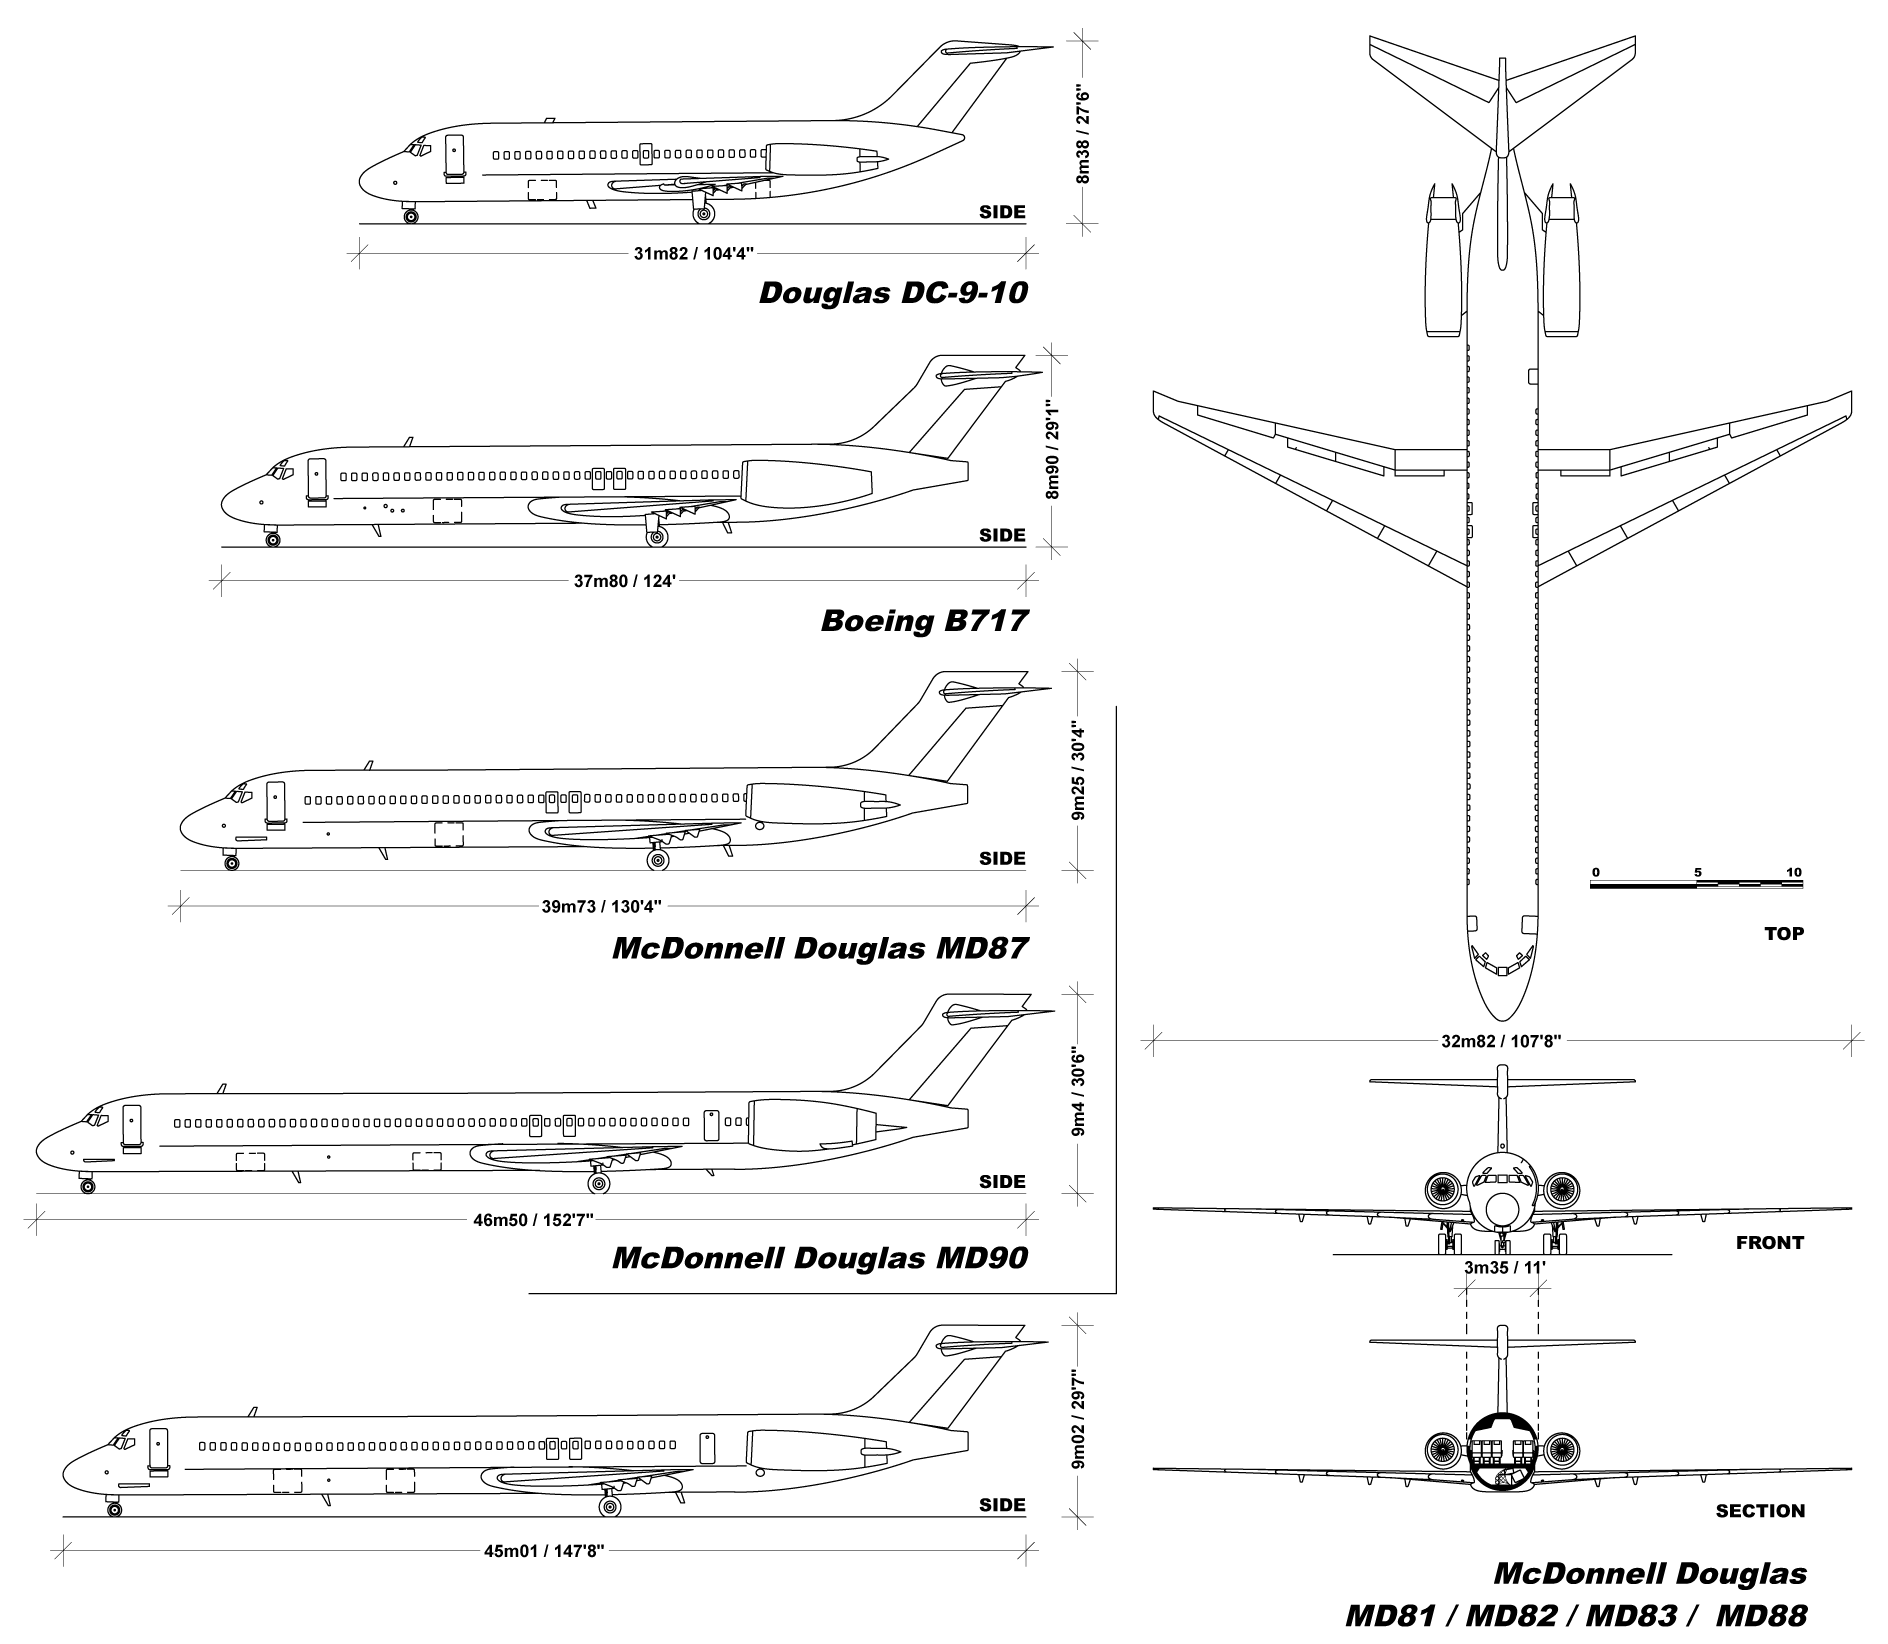 Comparison Of The DC-9 Variants From The DC-9-10 Series To